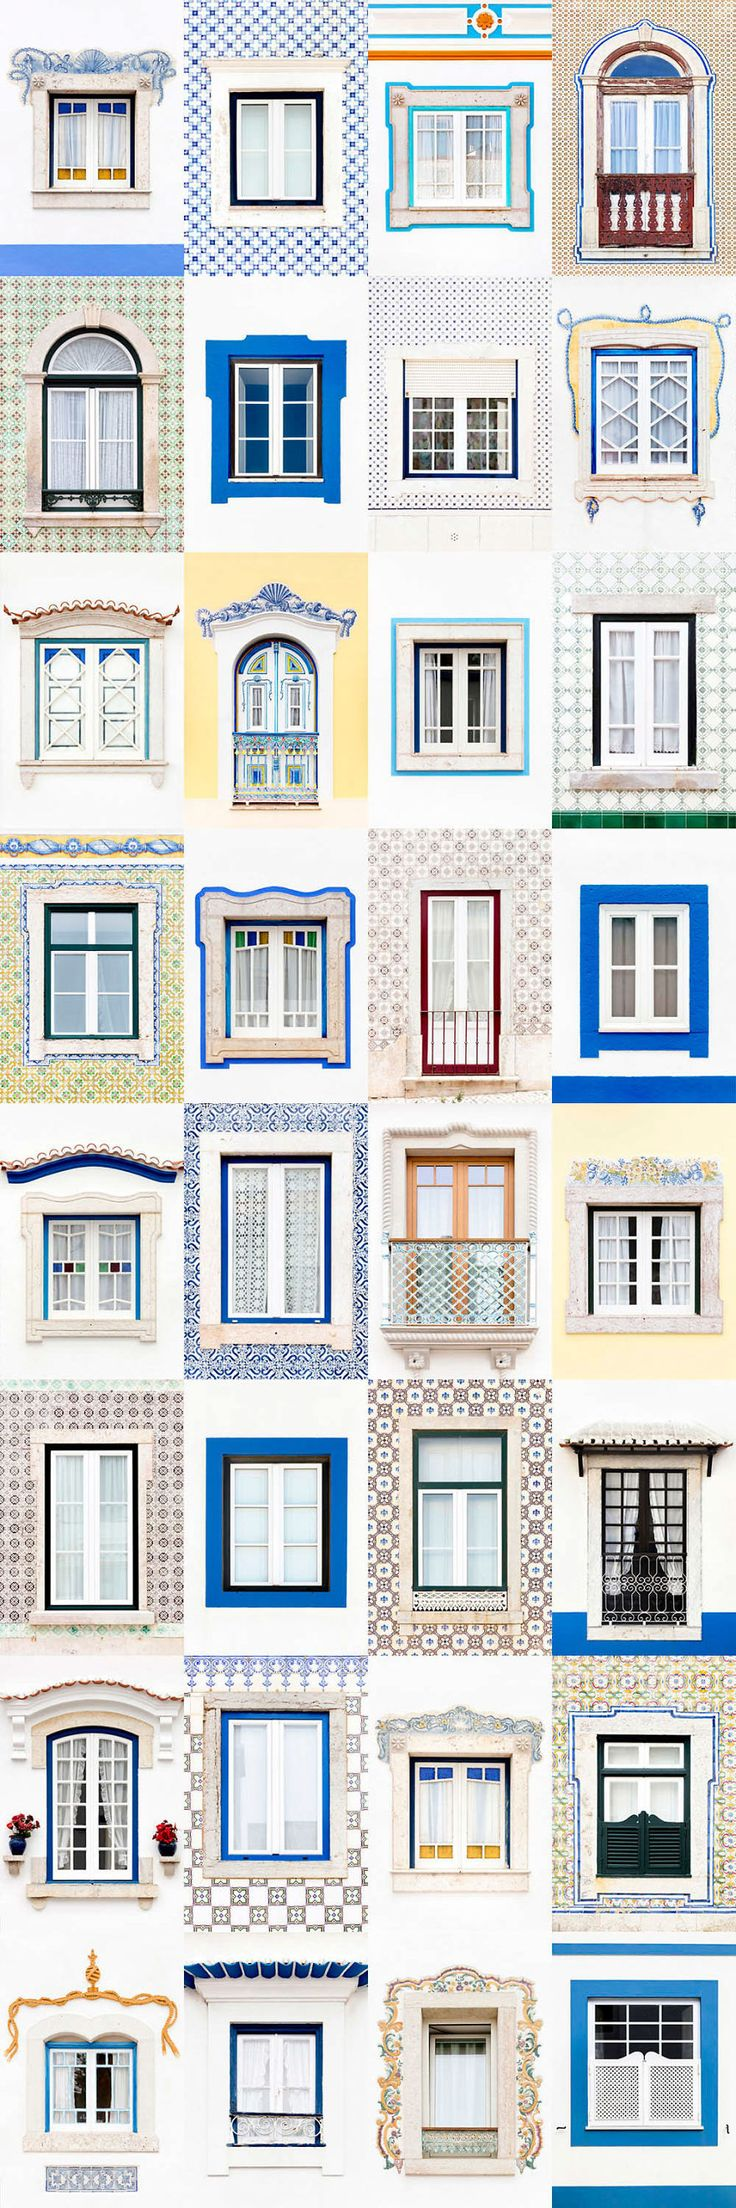 I Traveled All Over #Portugal To Photograph Windows, And Captured More Than 3200 Of Them - via BoredPanda 23-10-2017 | If you are planning a trip to Portugal, you can see which are the most beautiful cities to visit or what kind of architecture you like the most. Photo: Ericeira